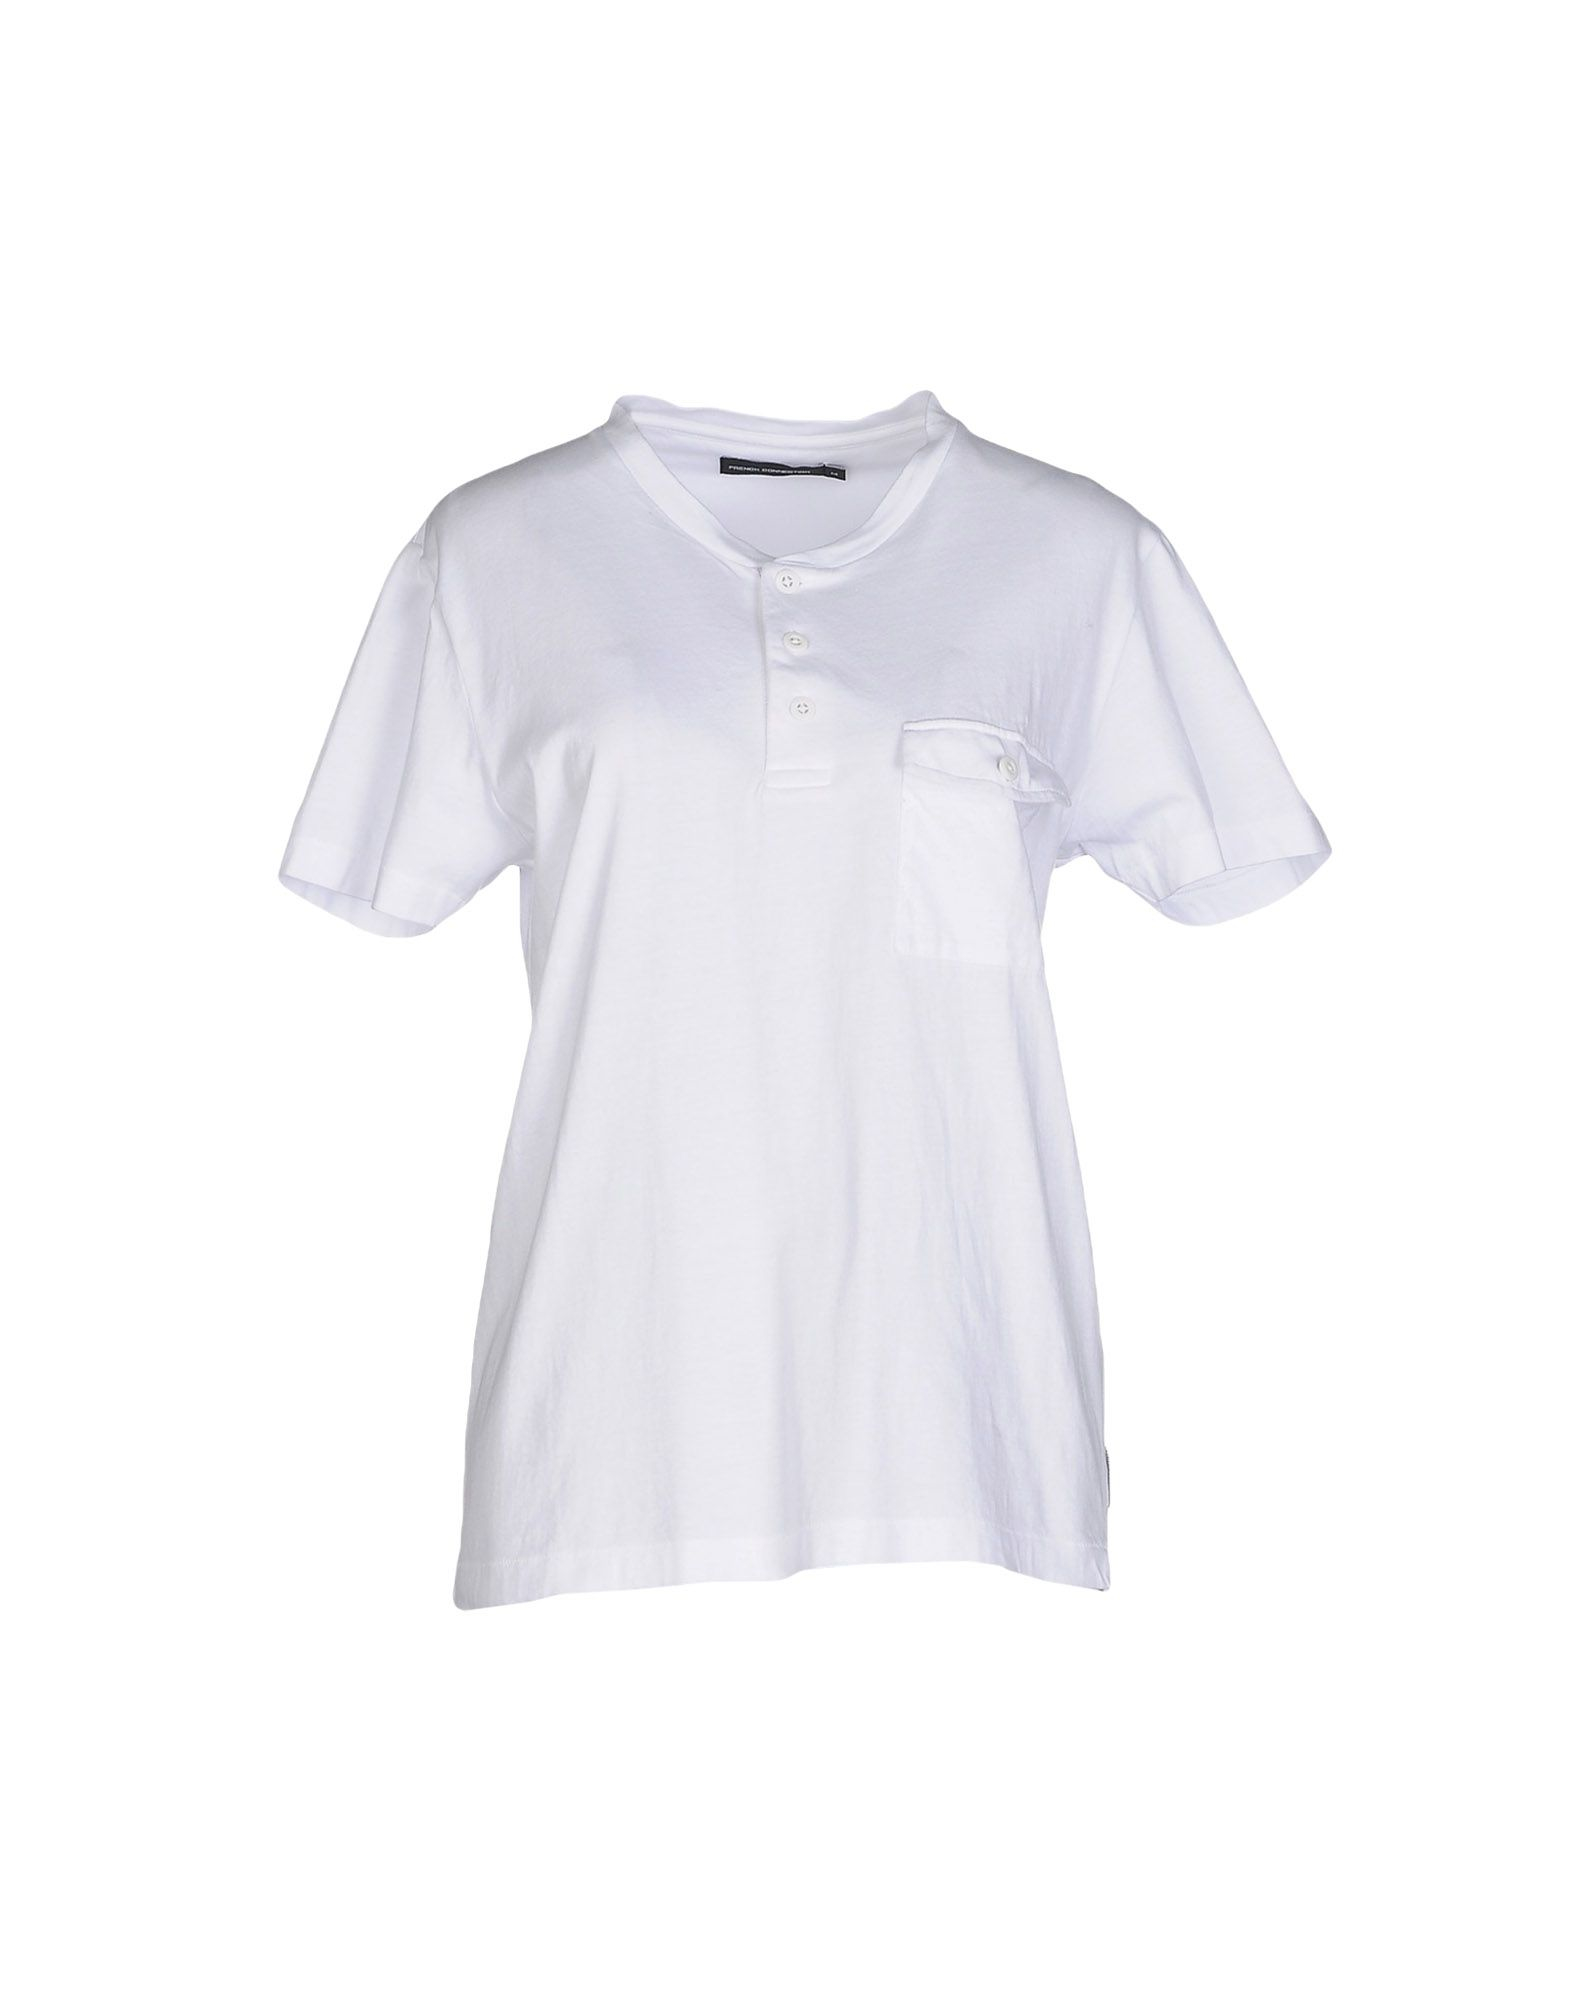 French Connection T Shirt In White Lyst